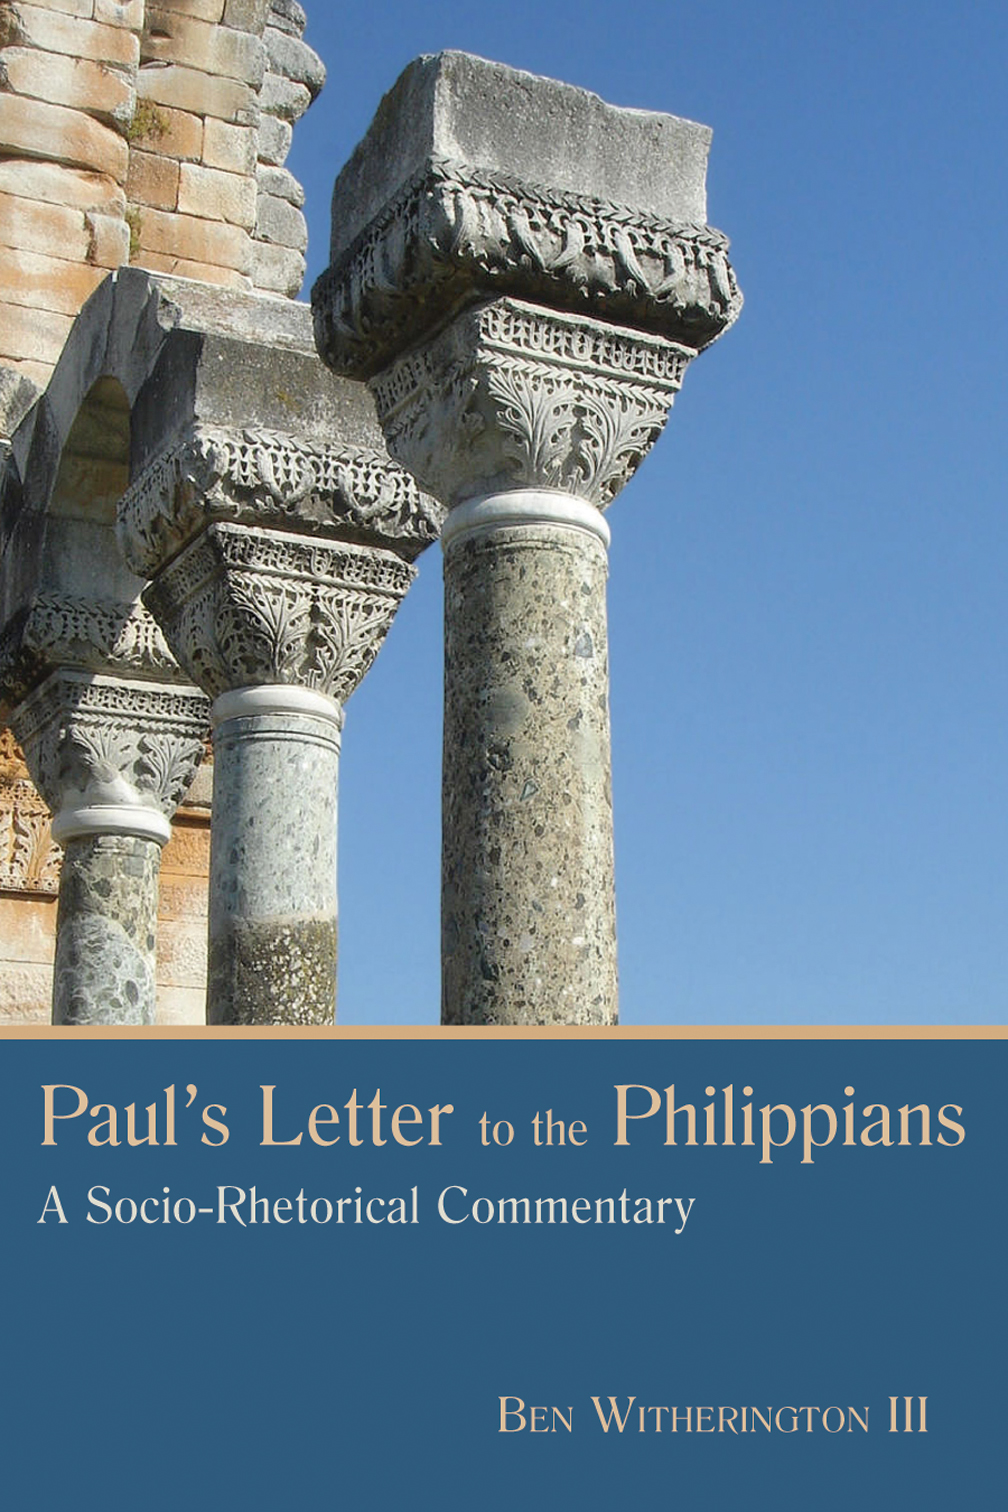 pauls letter to the philippians paul s letter to the philippians ben witherington iii 31105